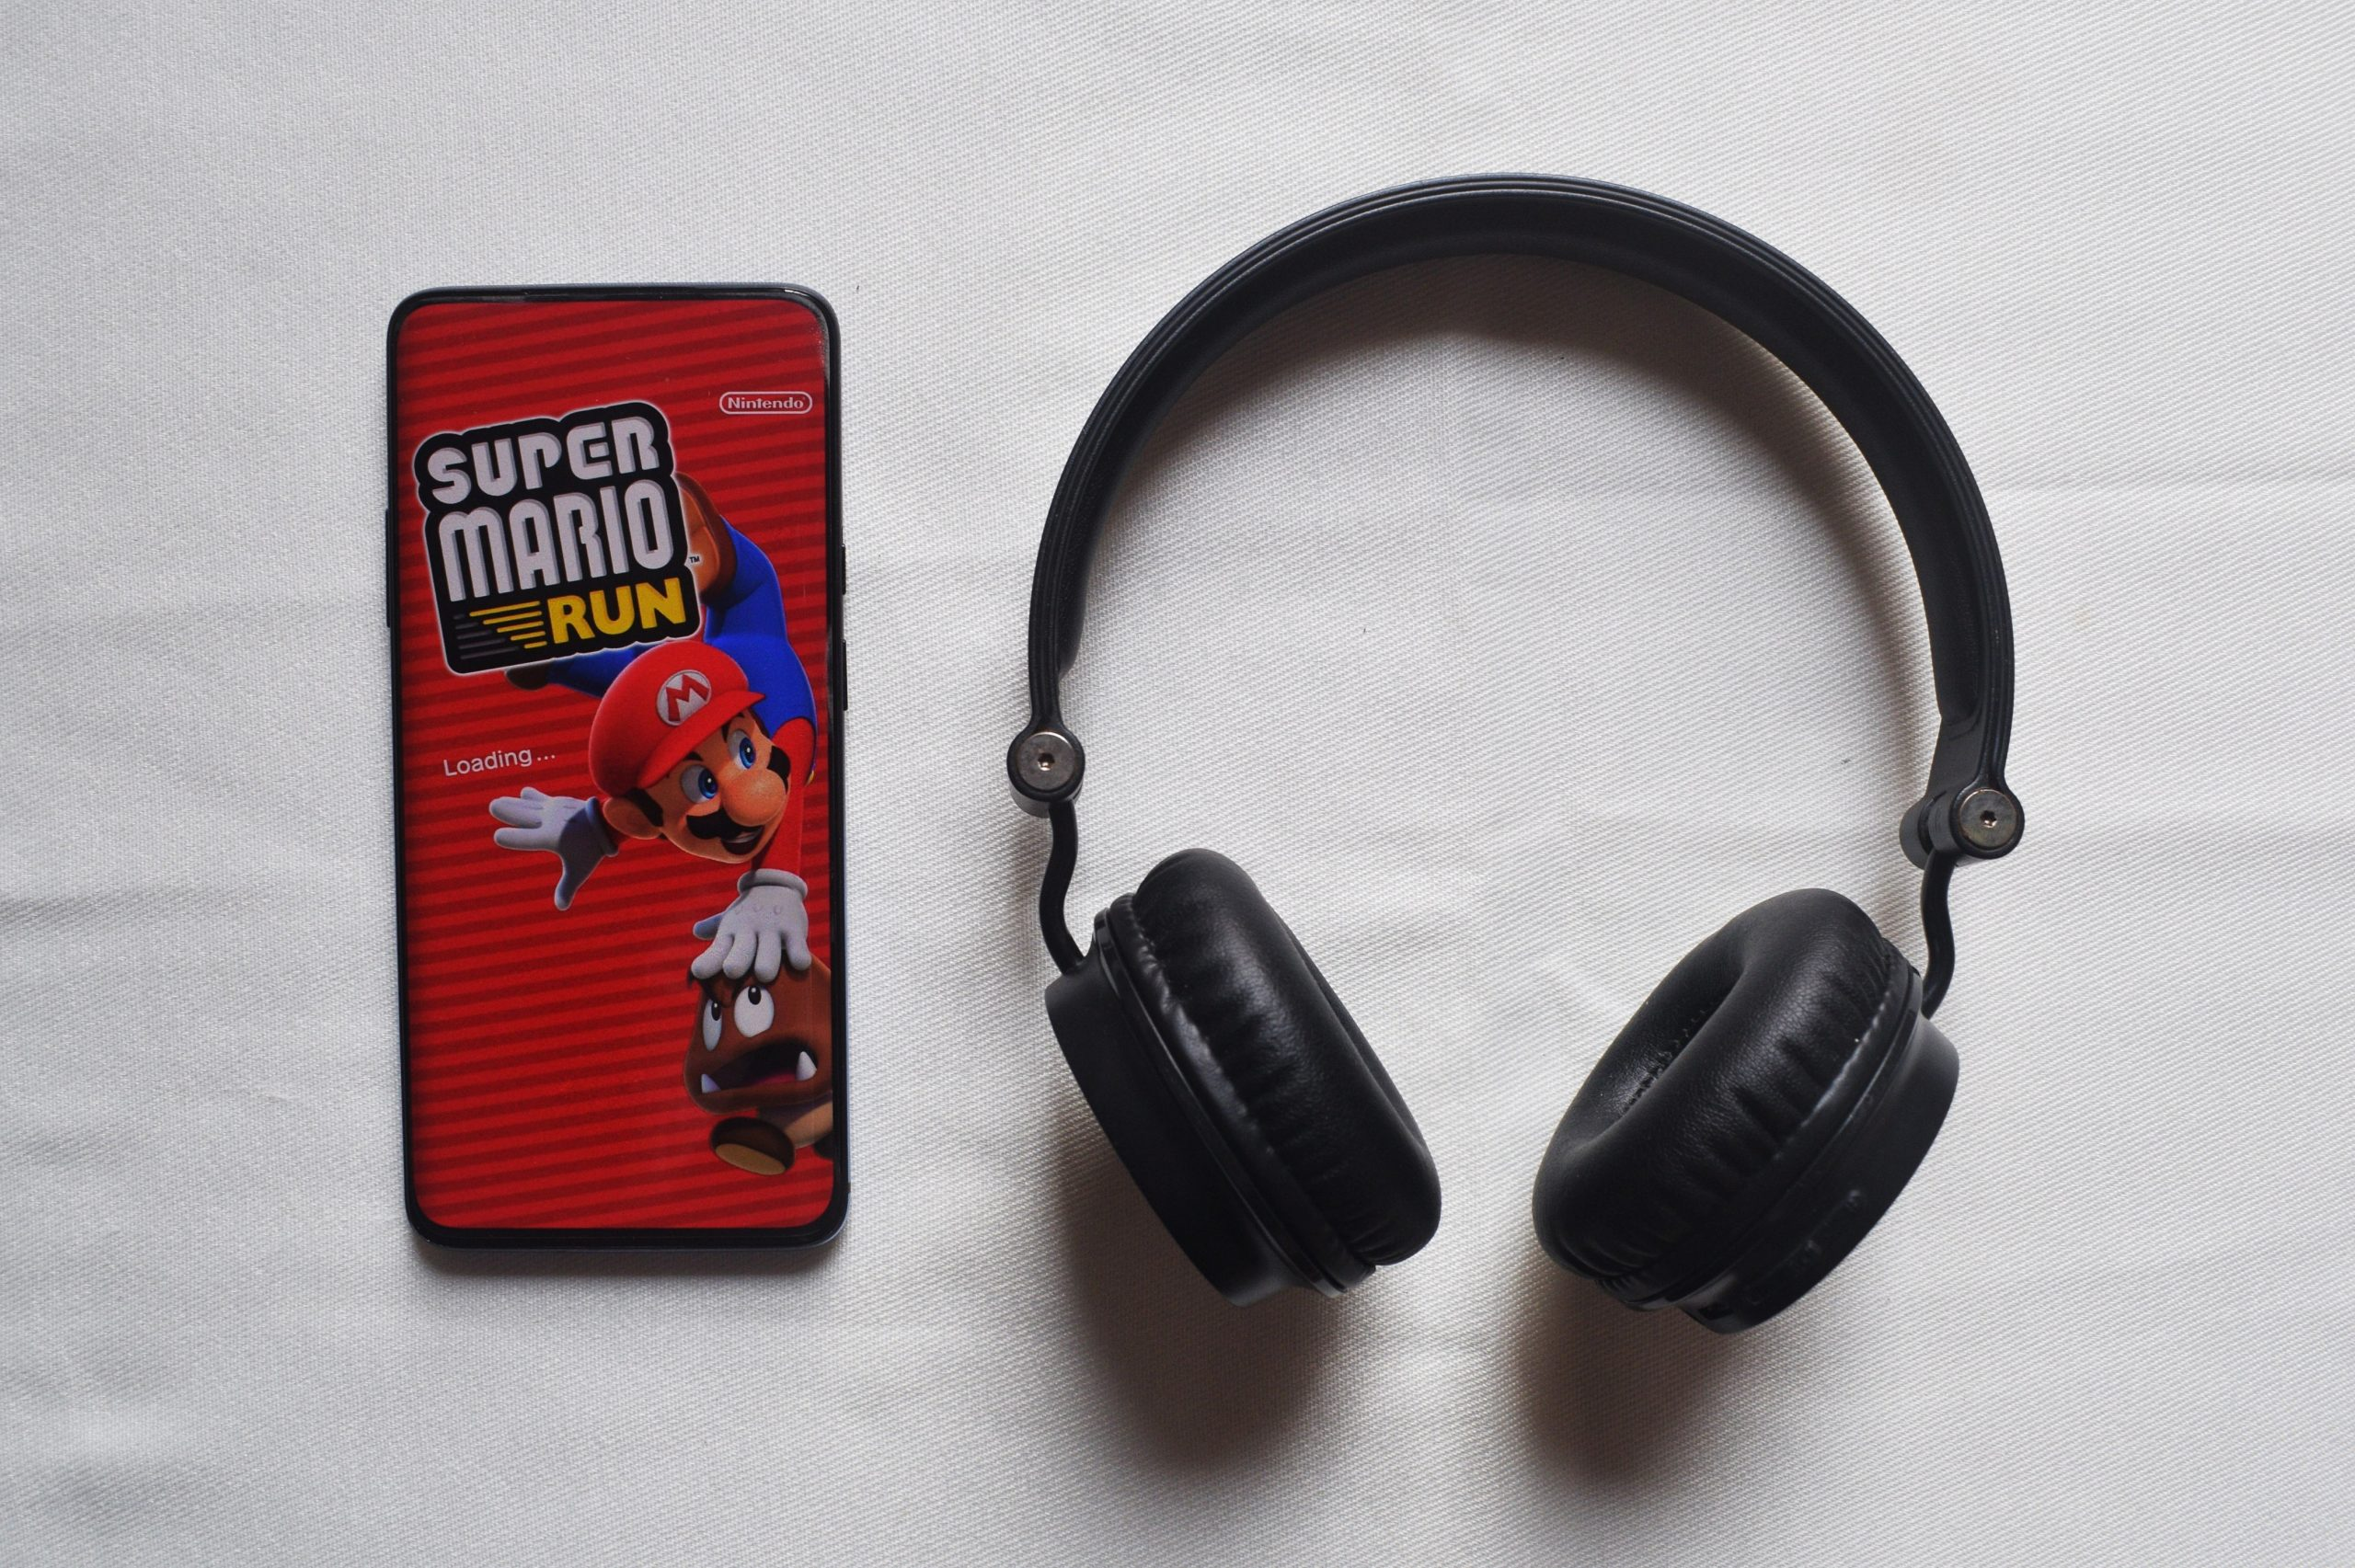 mobile game and headphones